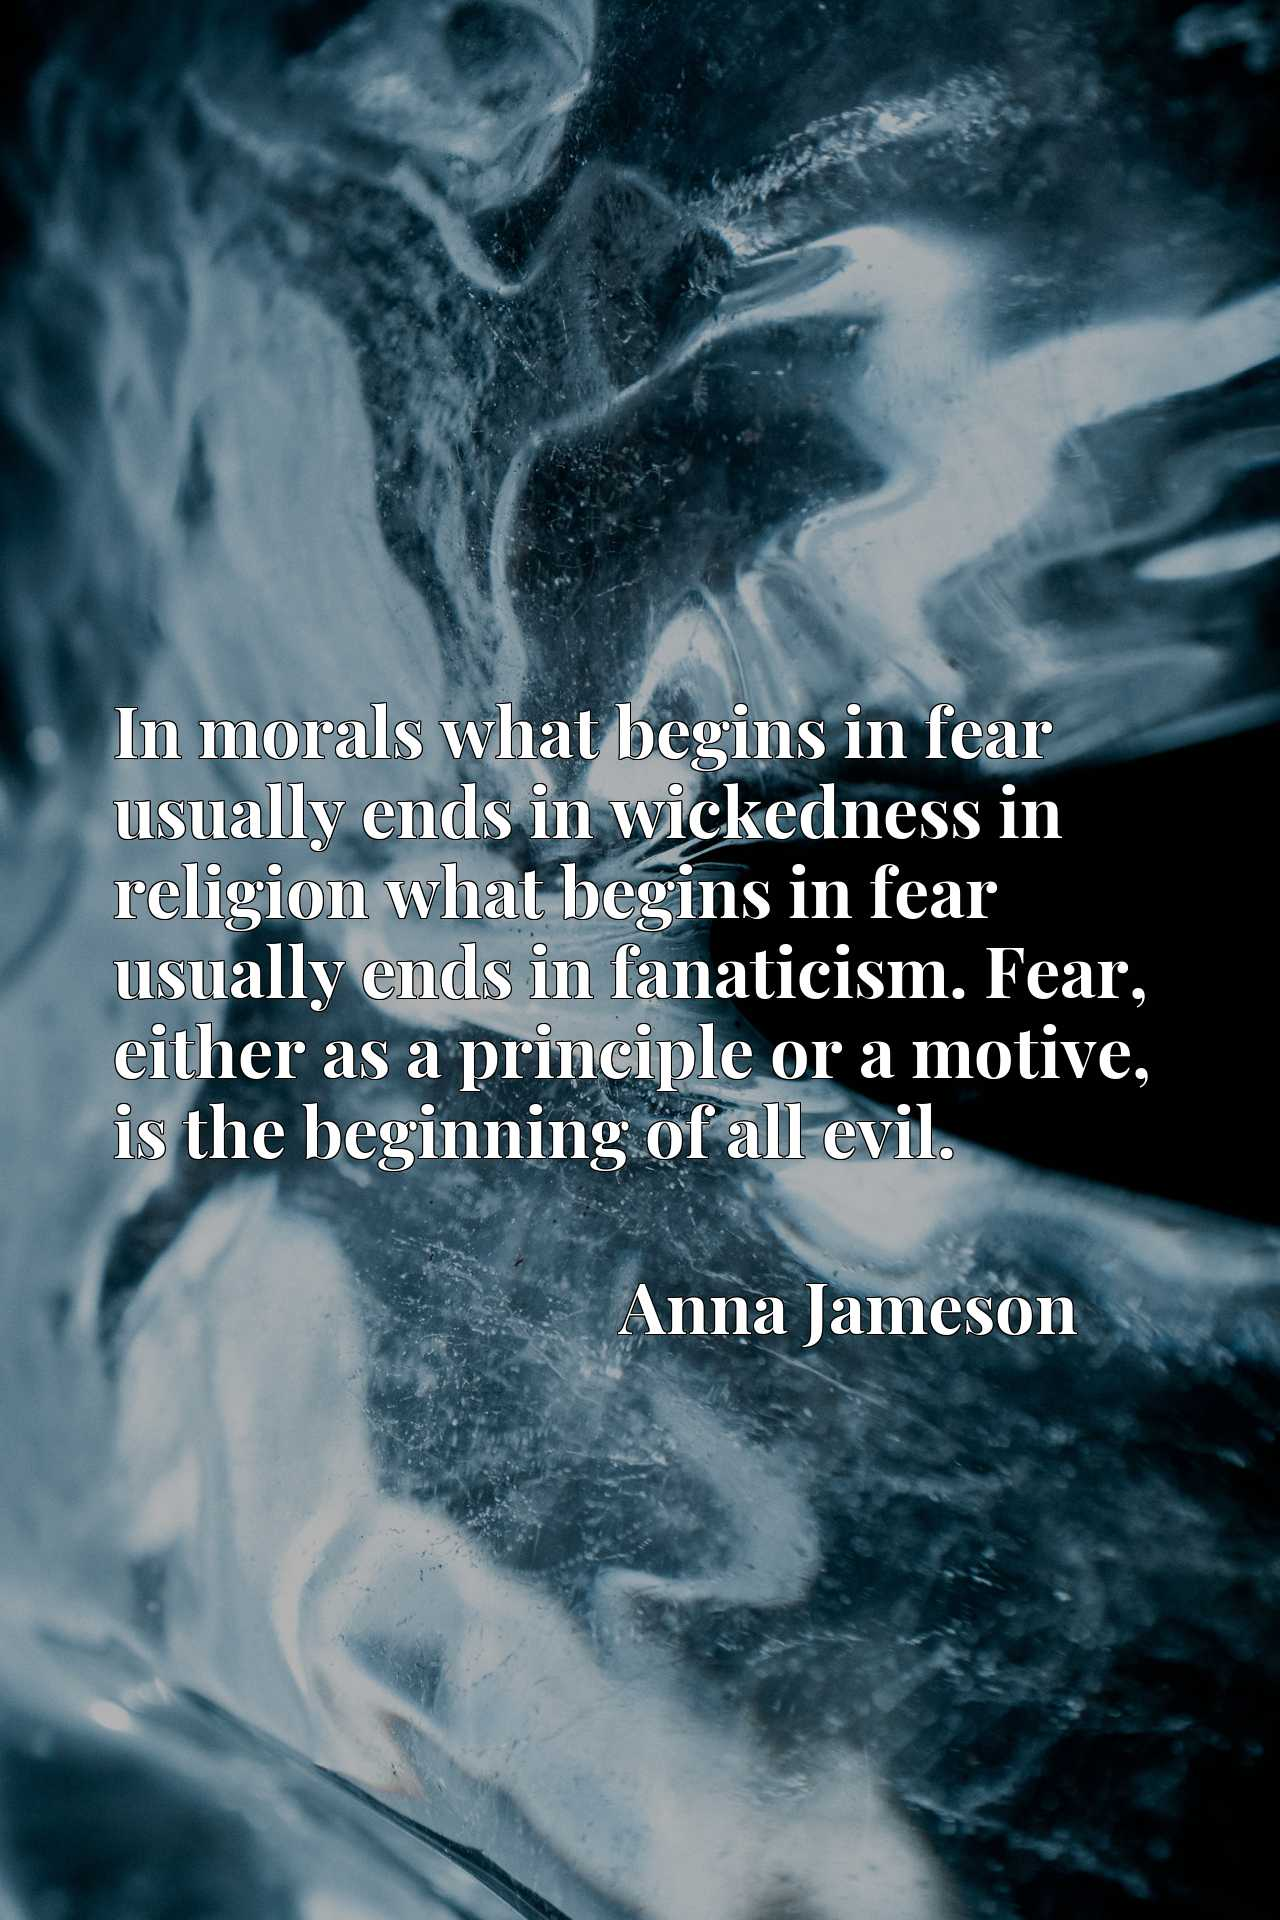 In morals what begins in fear usually ends in wickedness in religion what begins in fear usually ends in fanaticism. Fear, either as a principle or a motive, is the beginning of all evil.